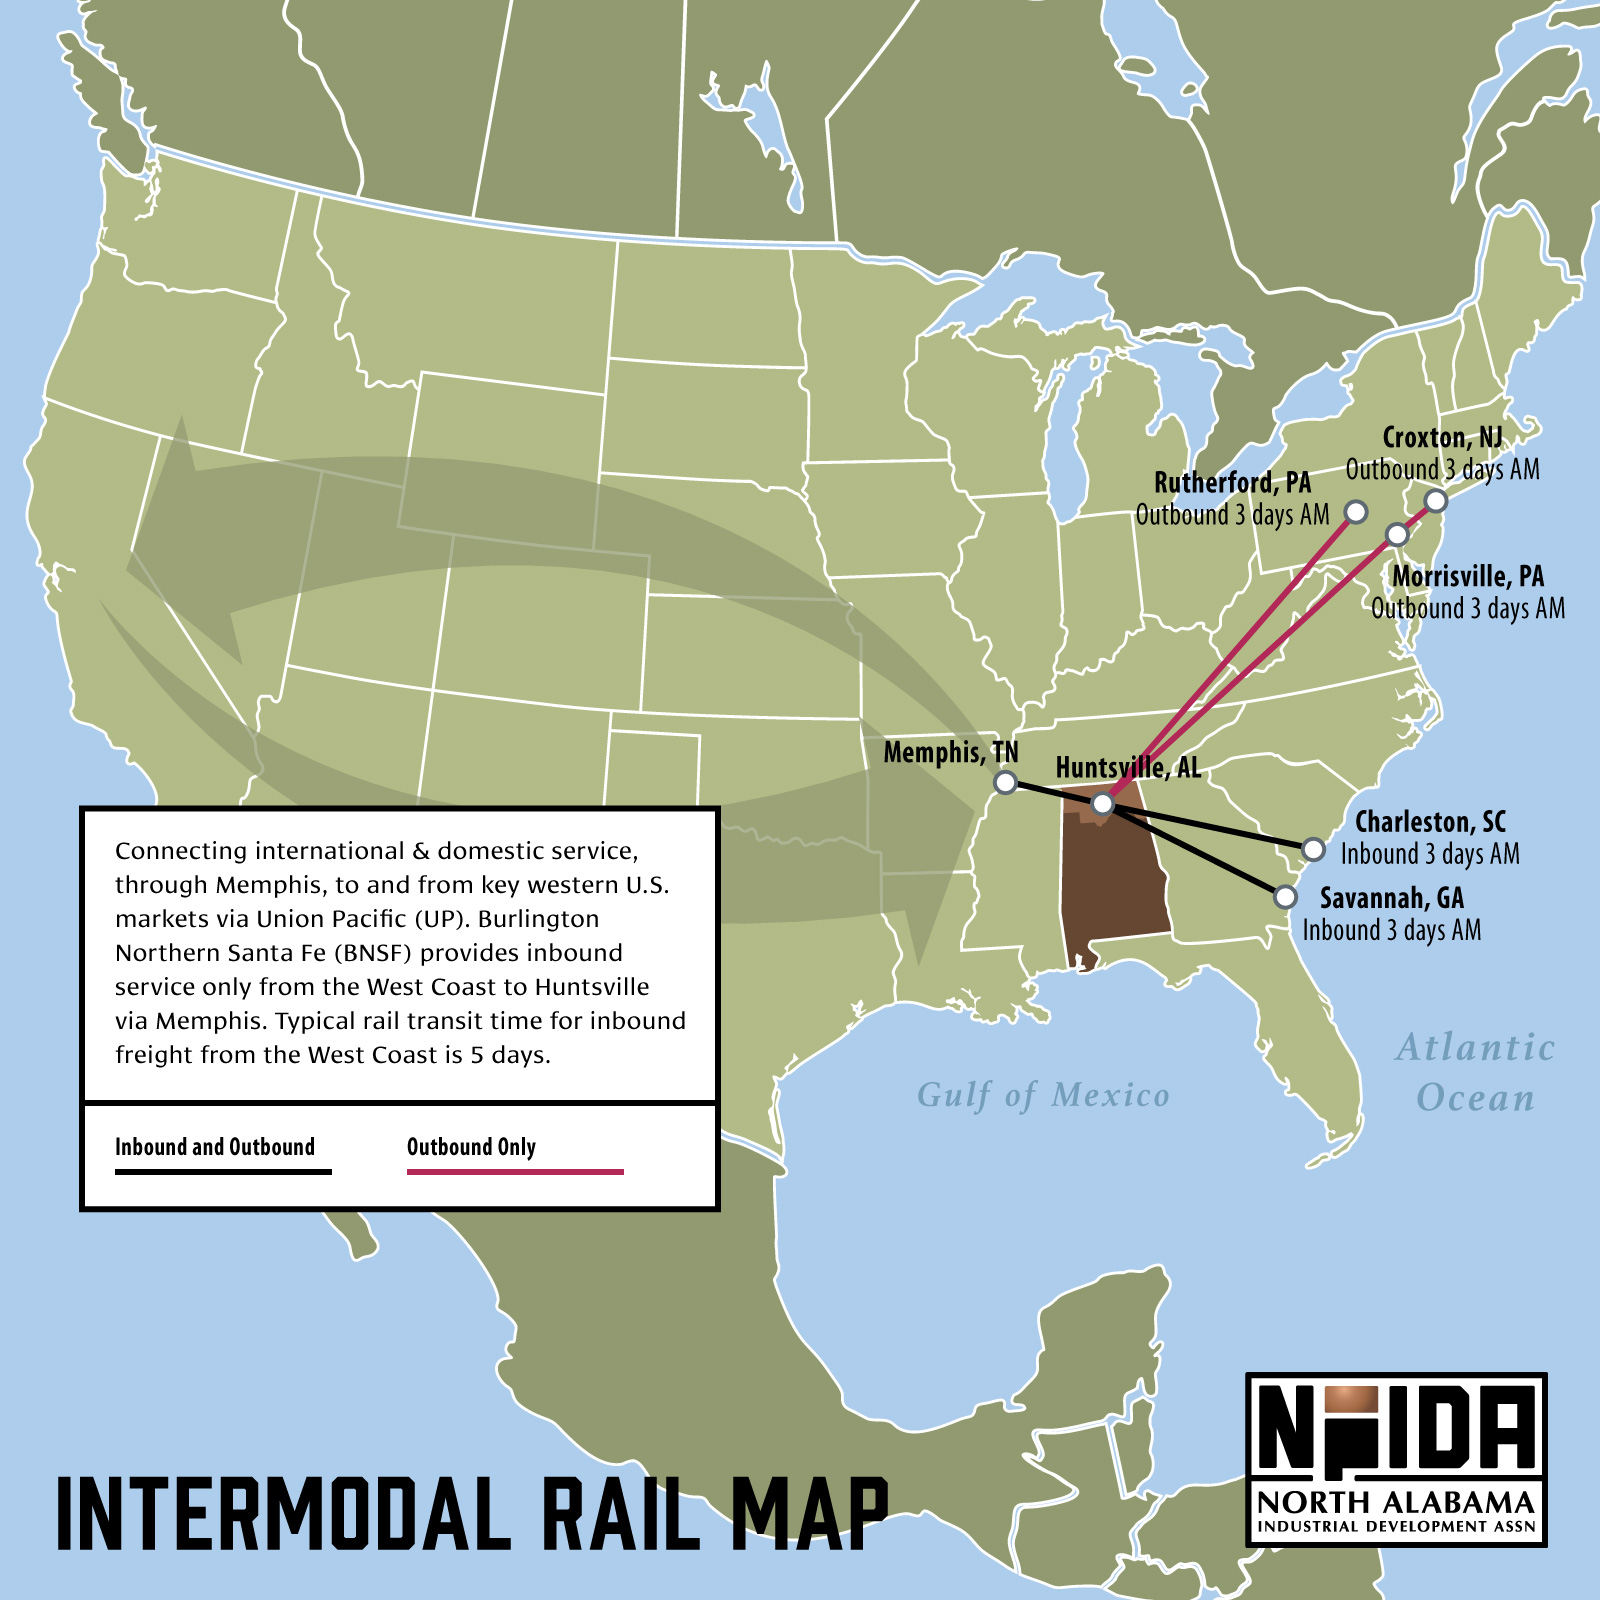 Intermodal Rail Map